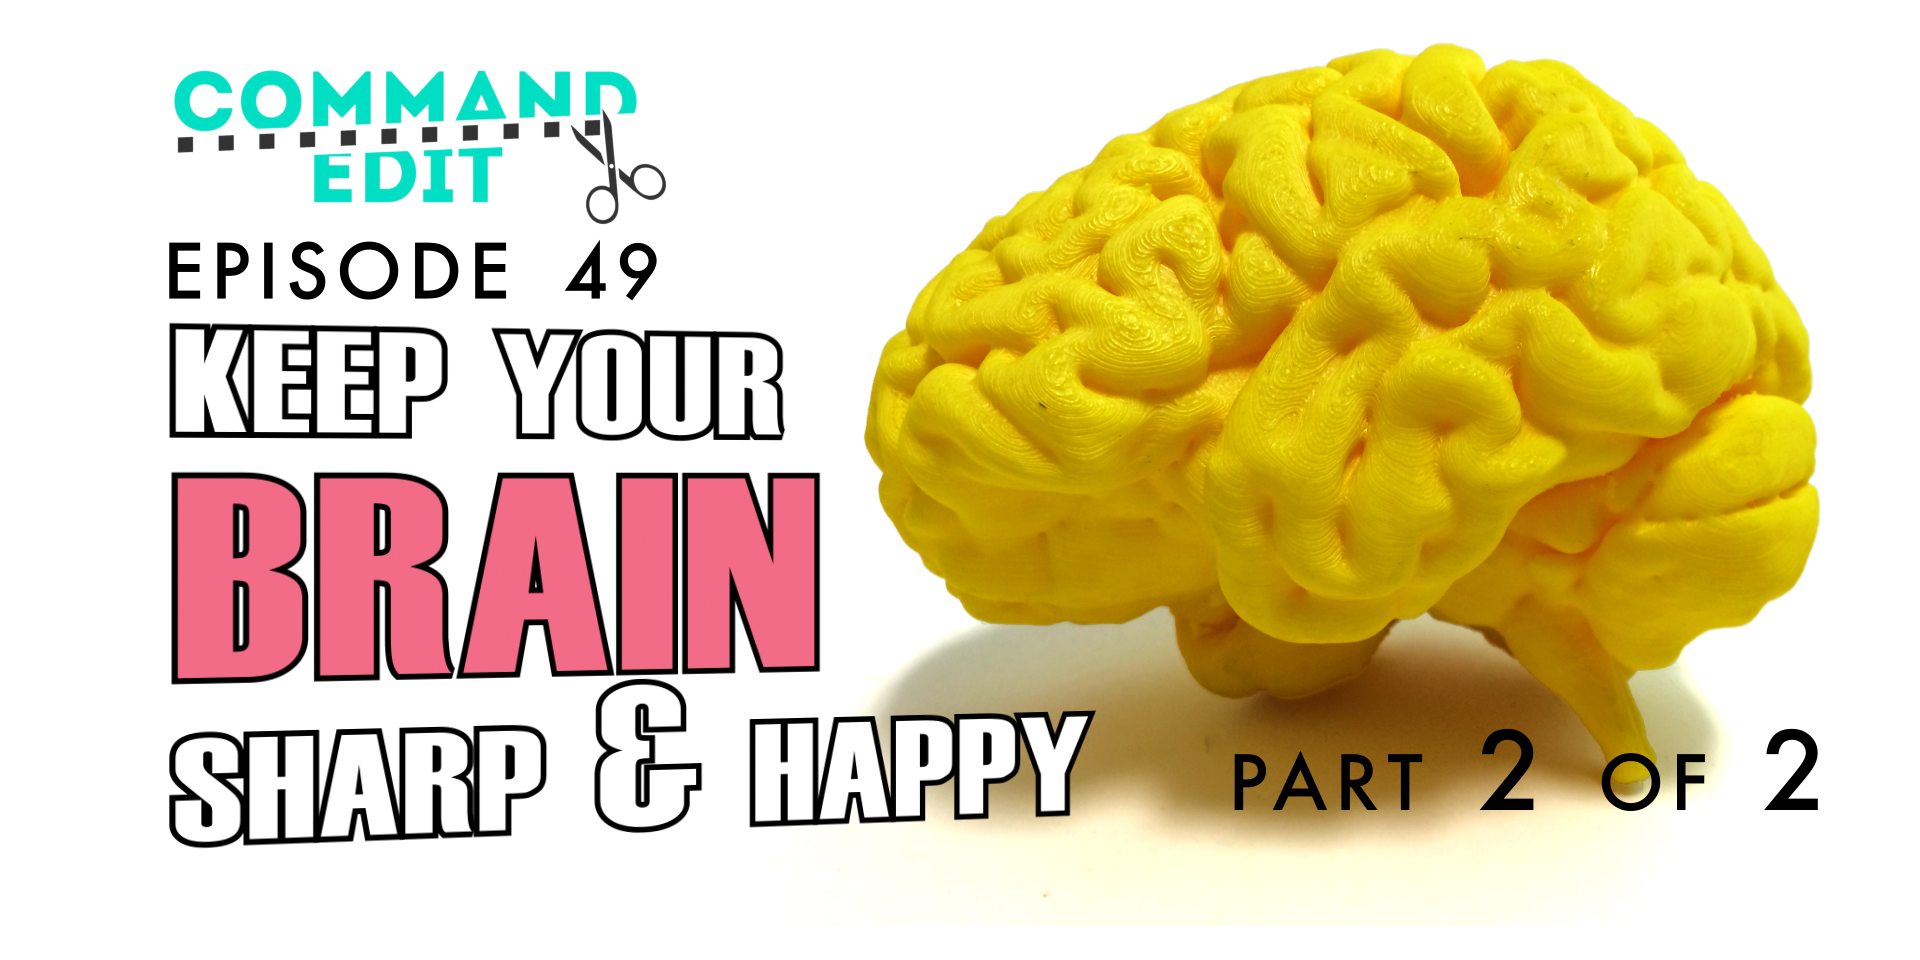 Command Edit Podcast Episode 49 Keep your brain happy health and sharp with mindfulness and meditation